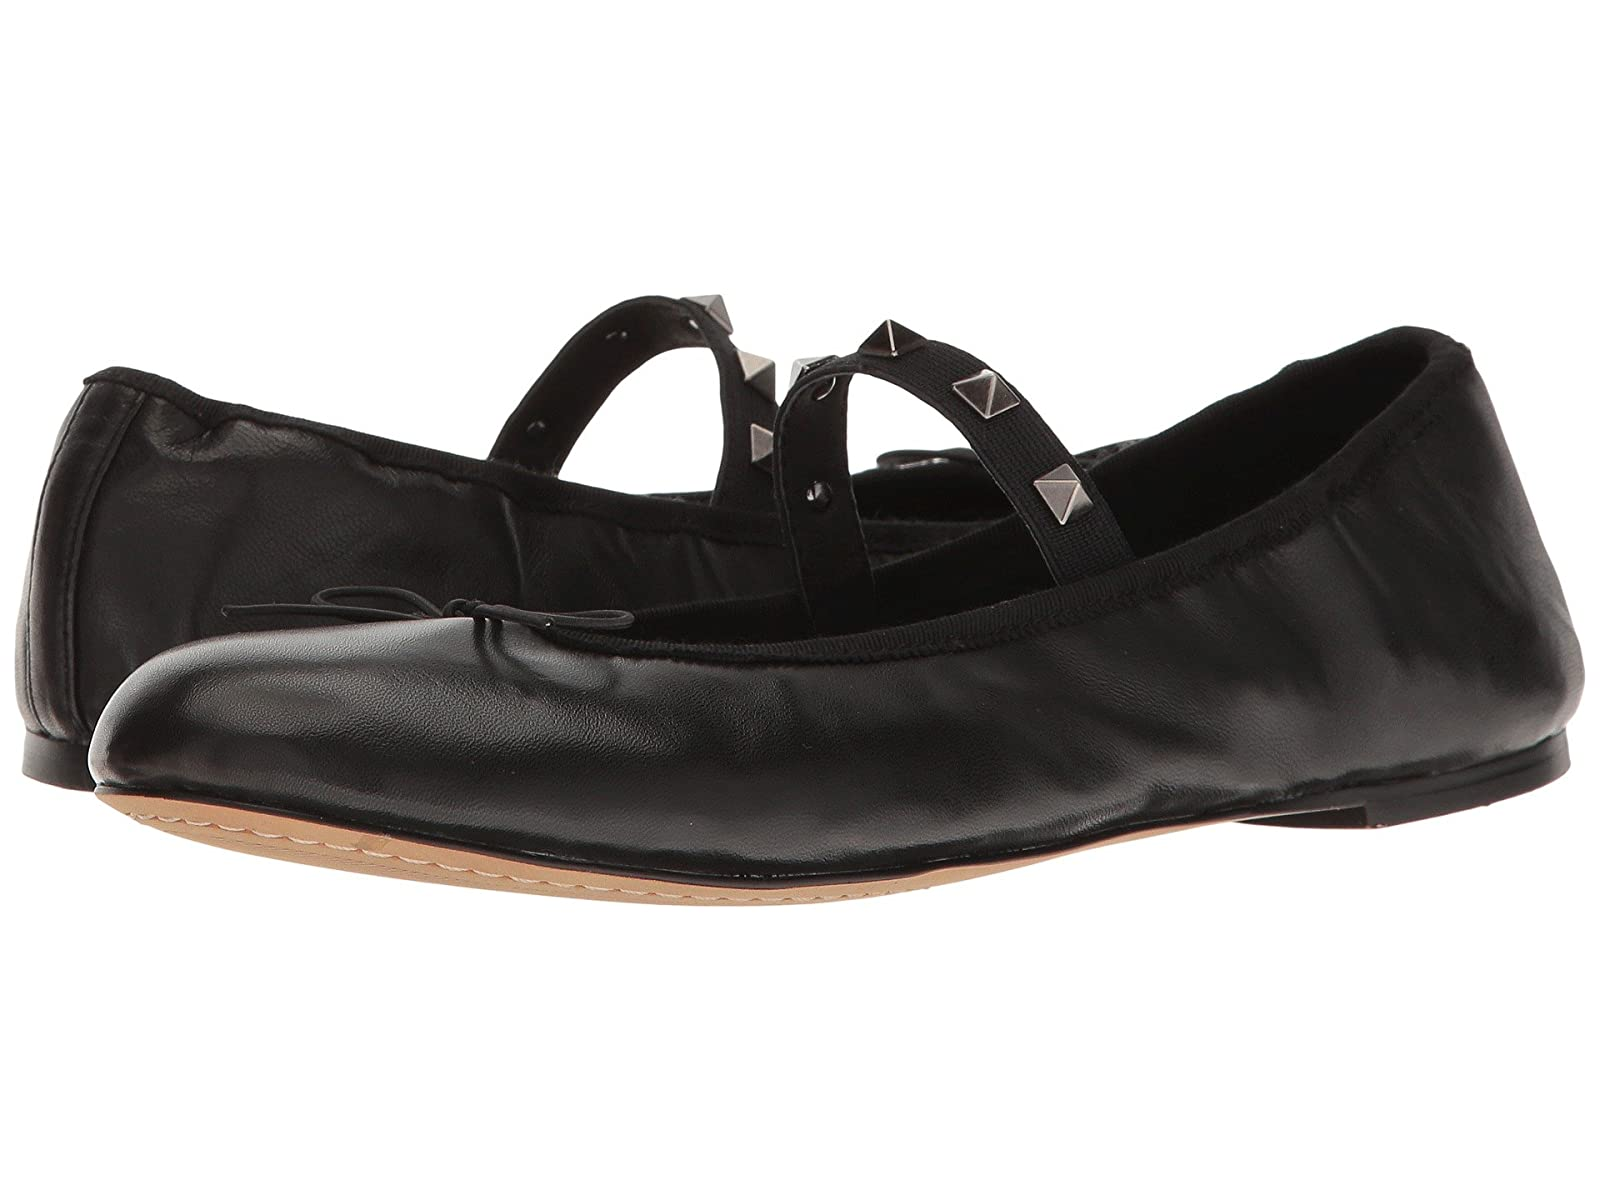 Vince Camuto PrillaCheap and distinctive eye-catching shoes